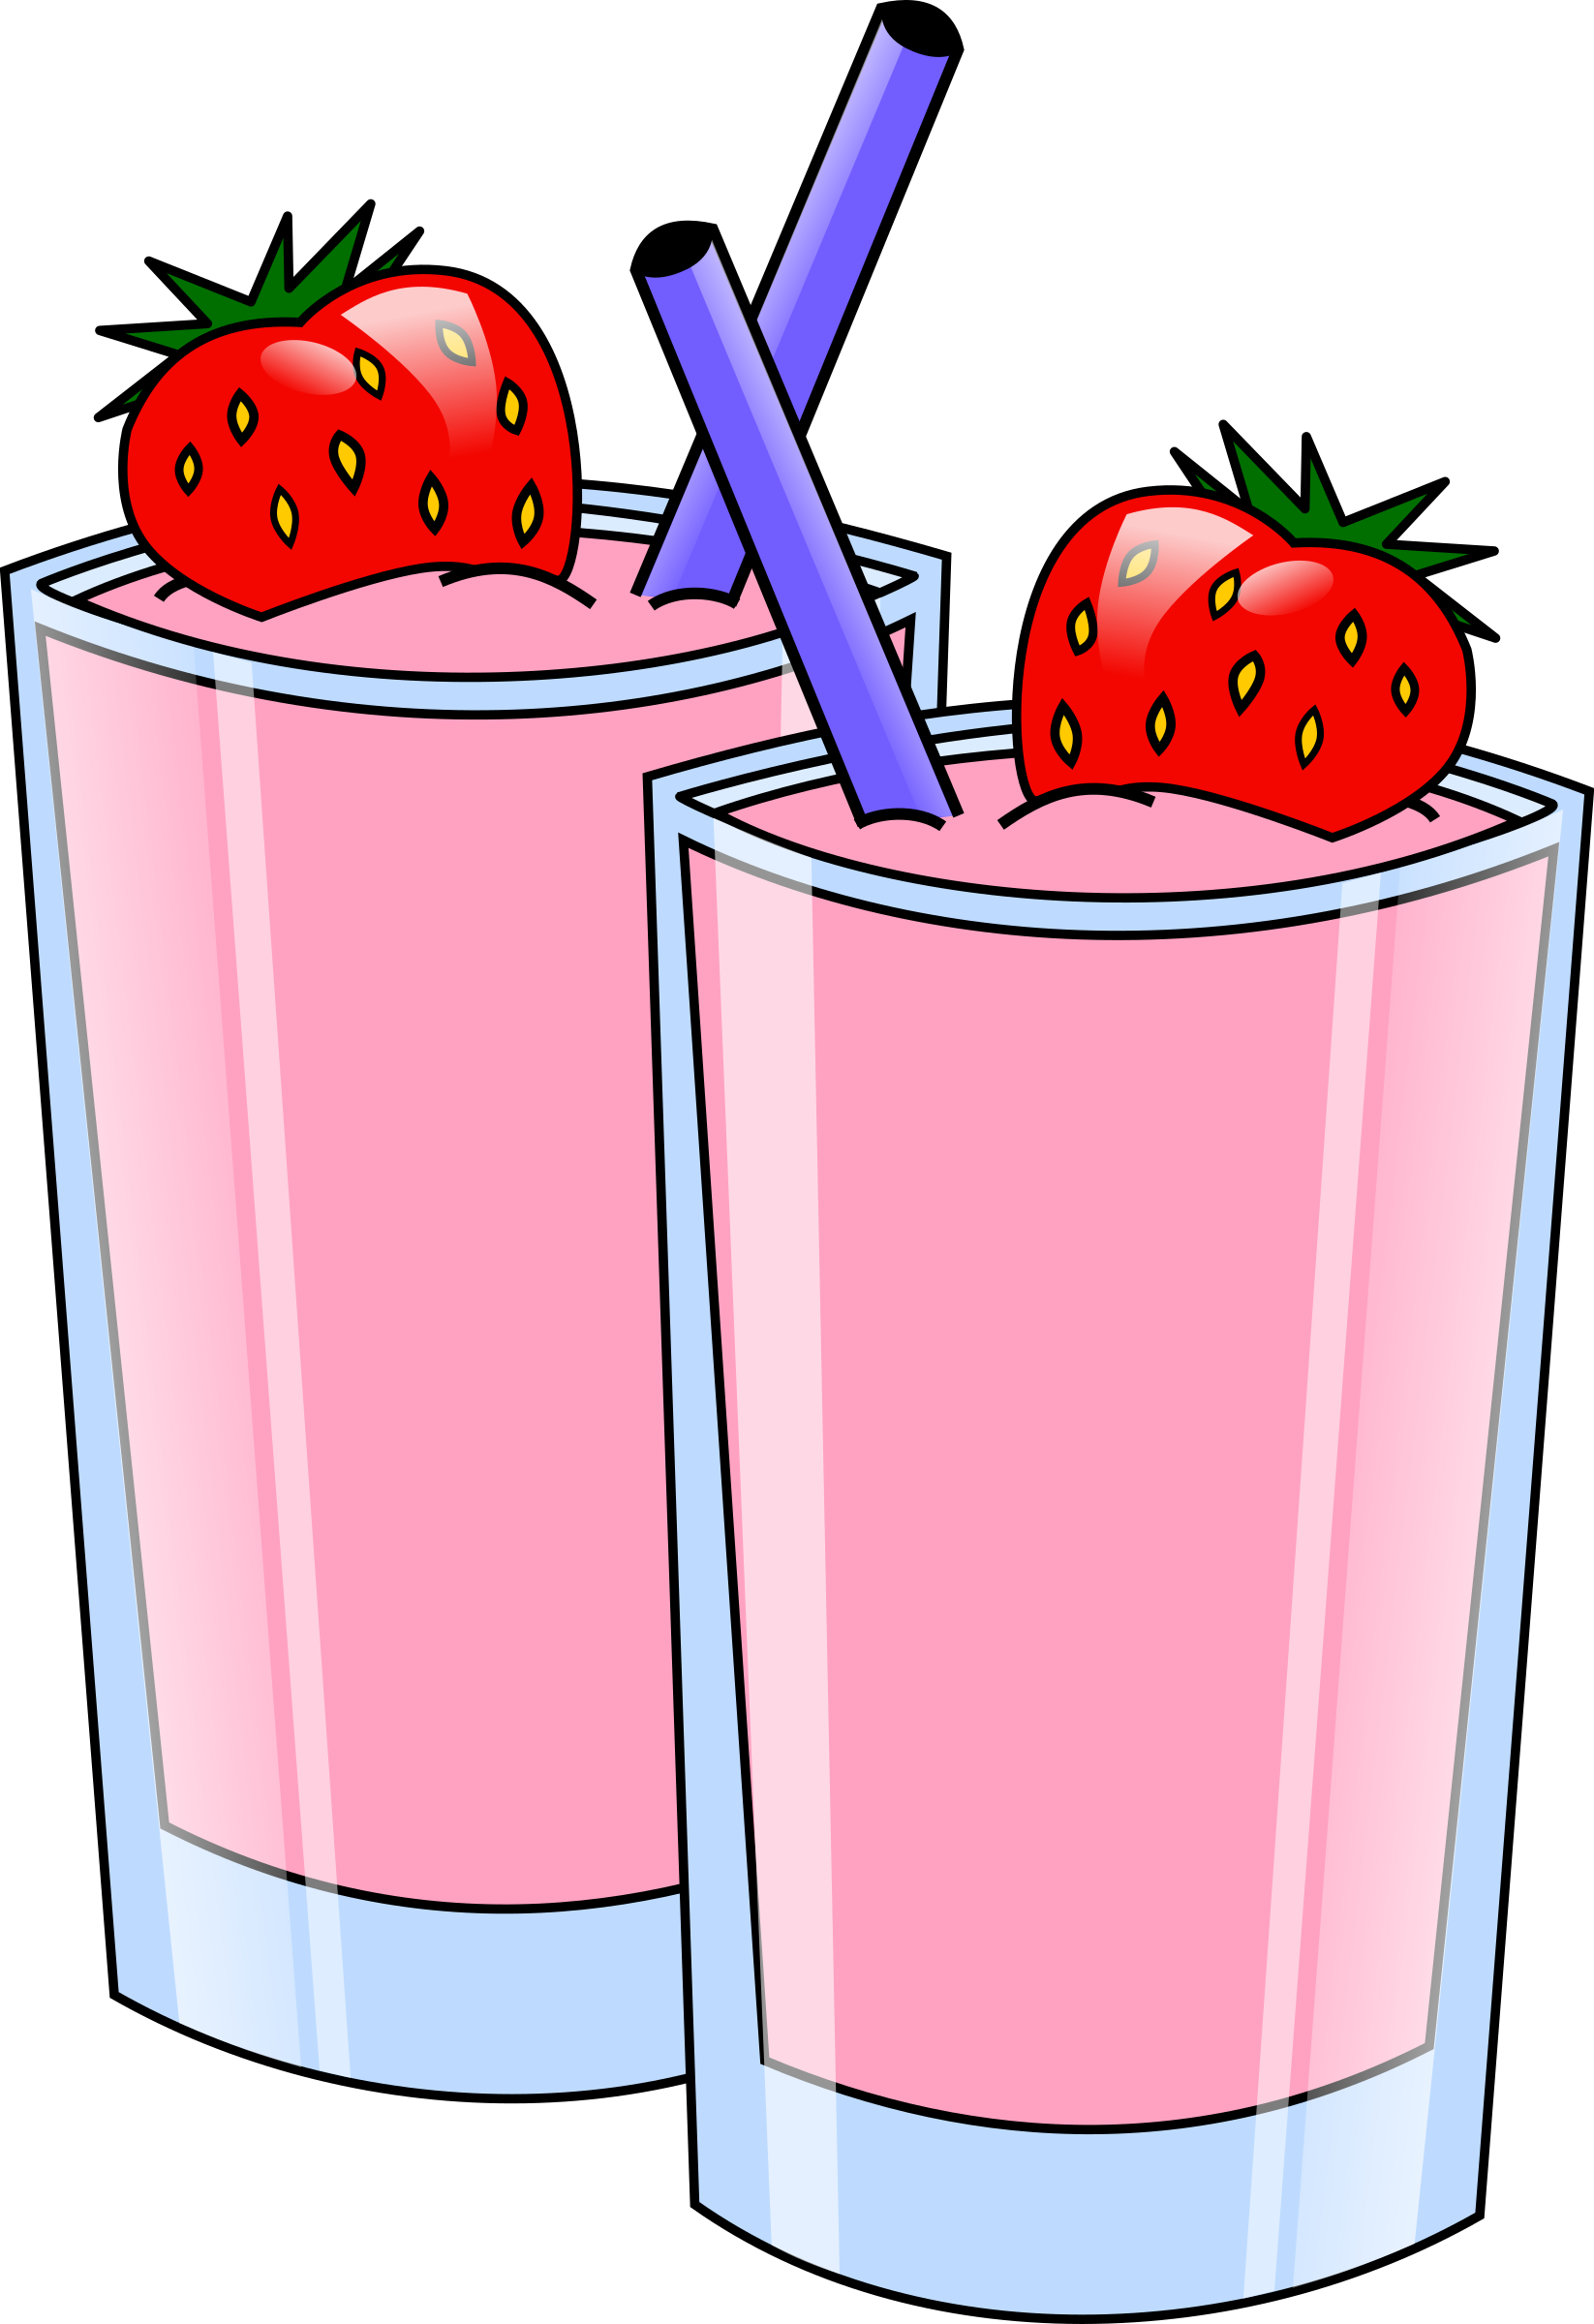 banner transparent stock Animated free on dumielauxepices. Milkshake clipart tall glass.